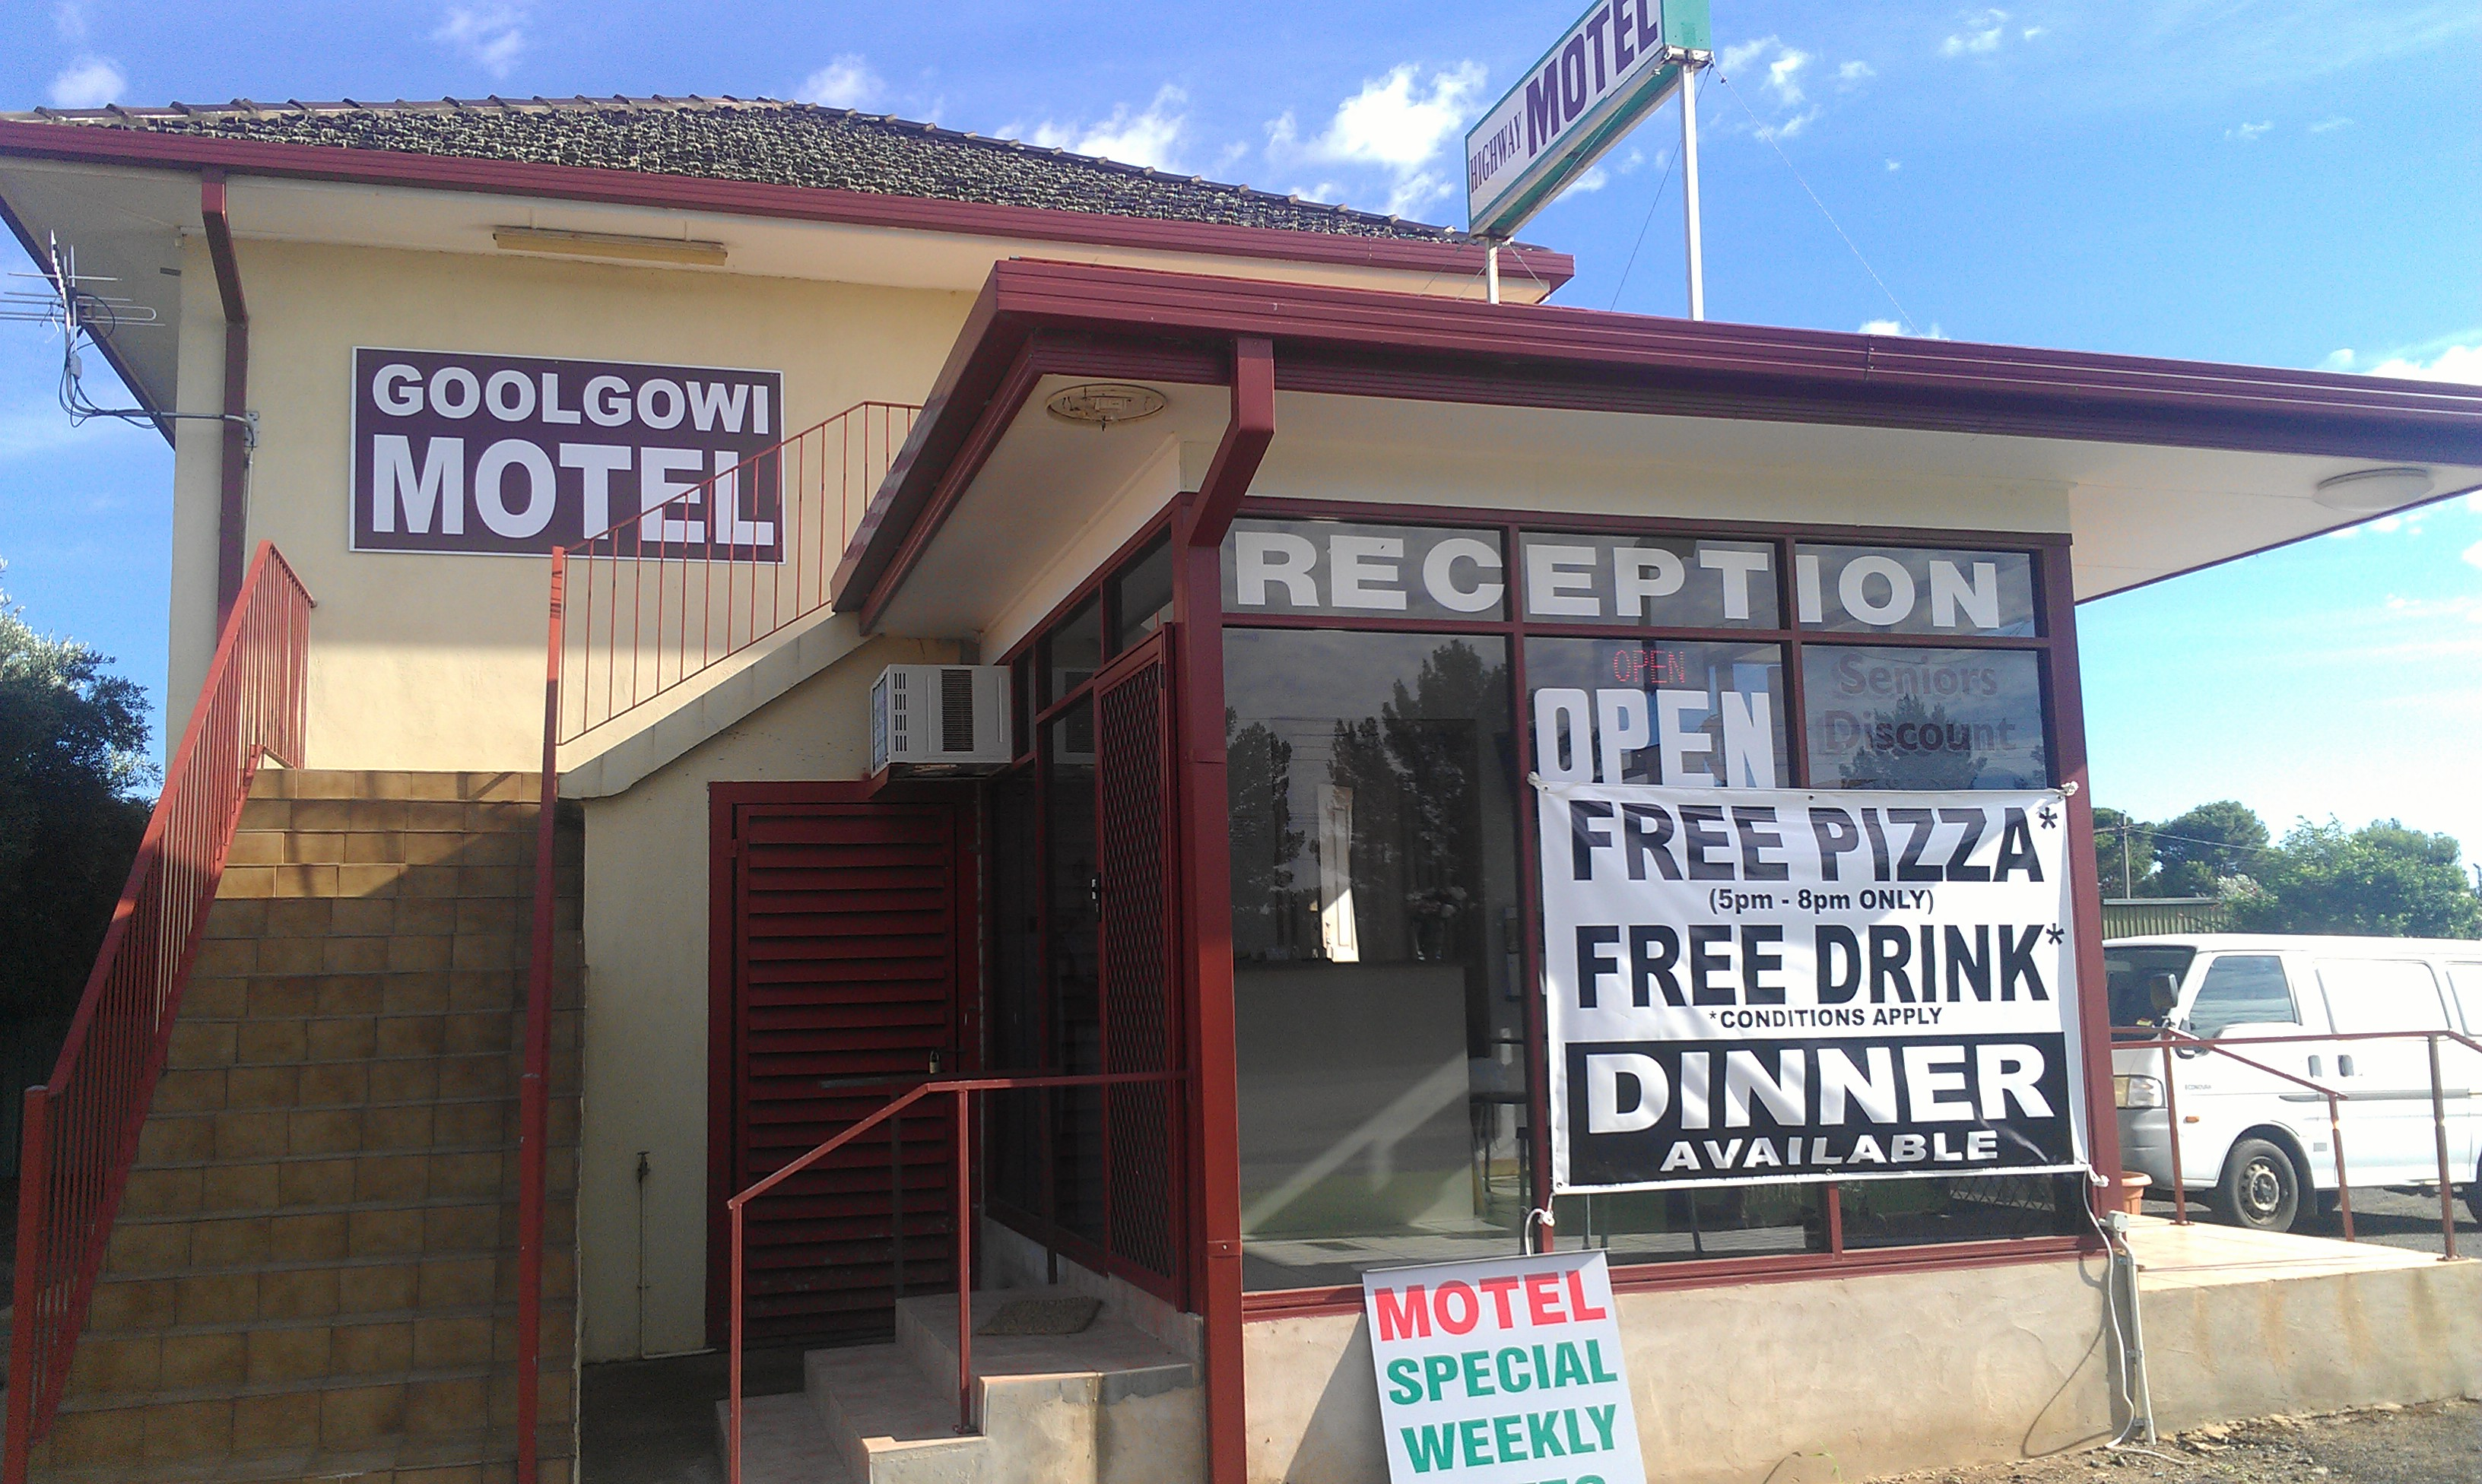 Royal Mail Hotel Goolgowi - Yarra Valley Accommodation